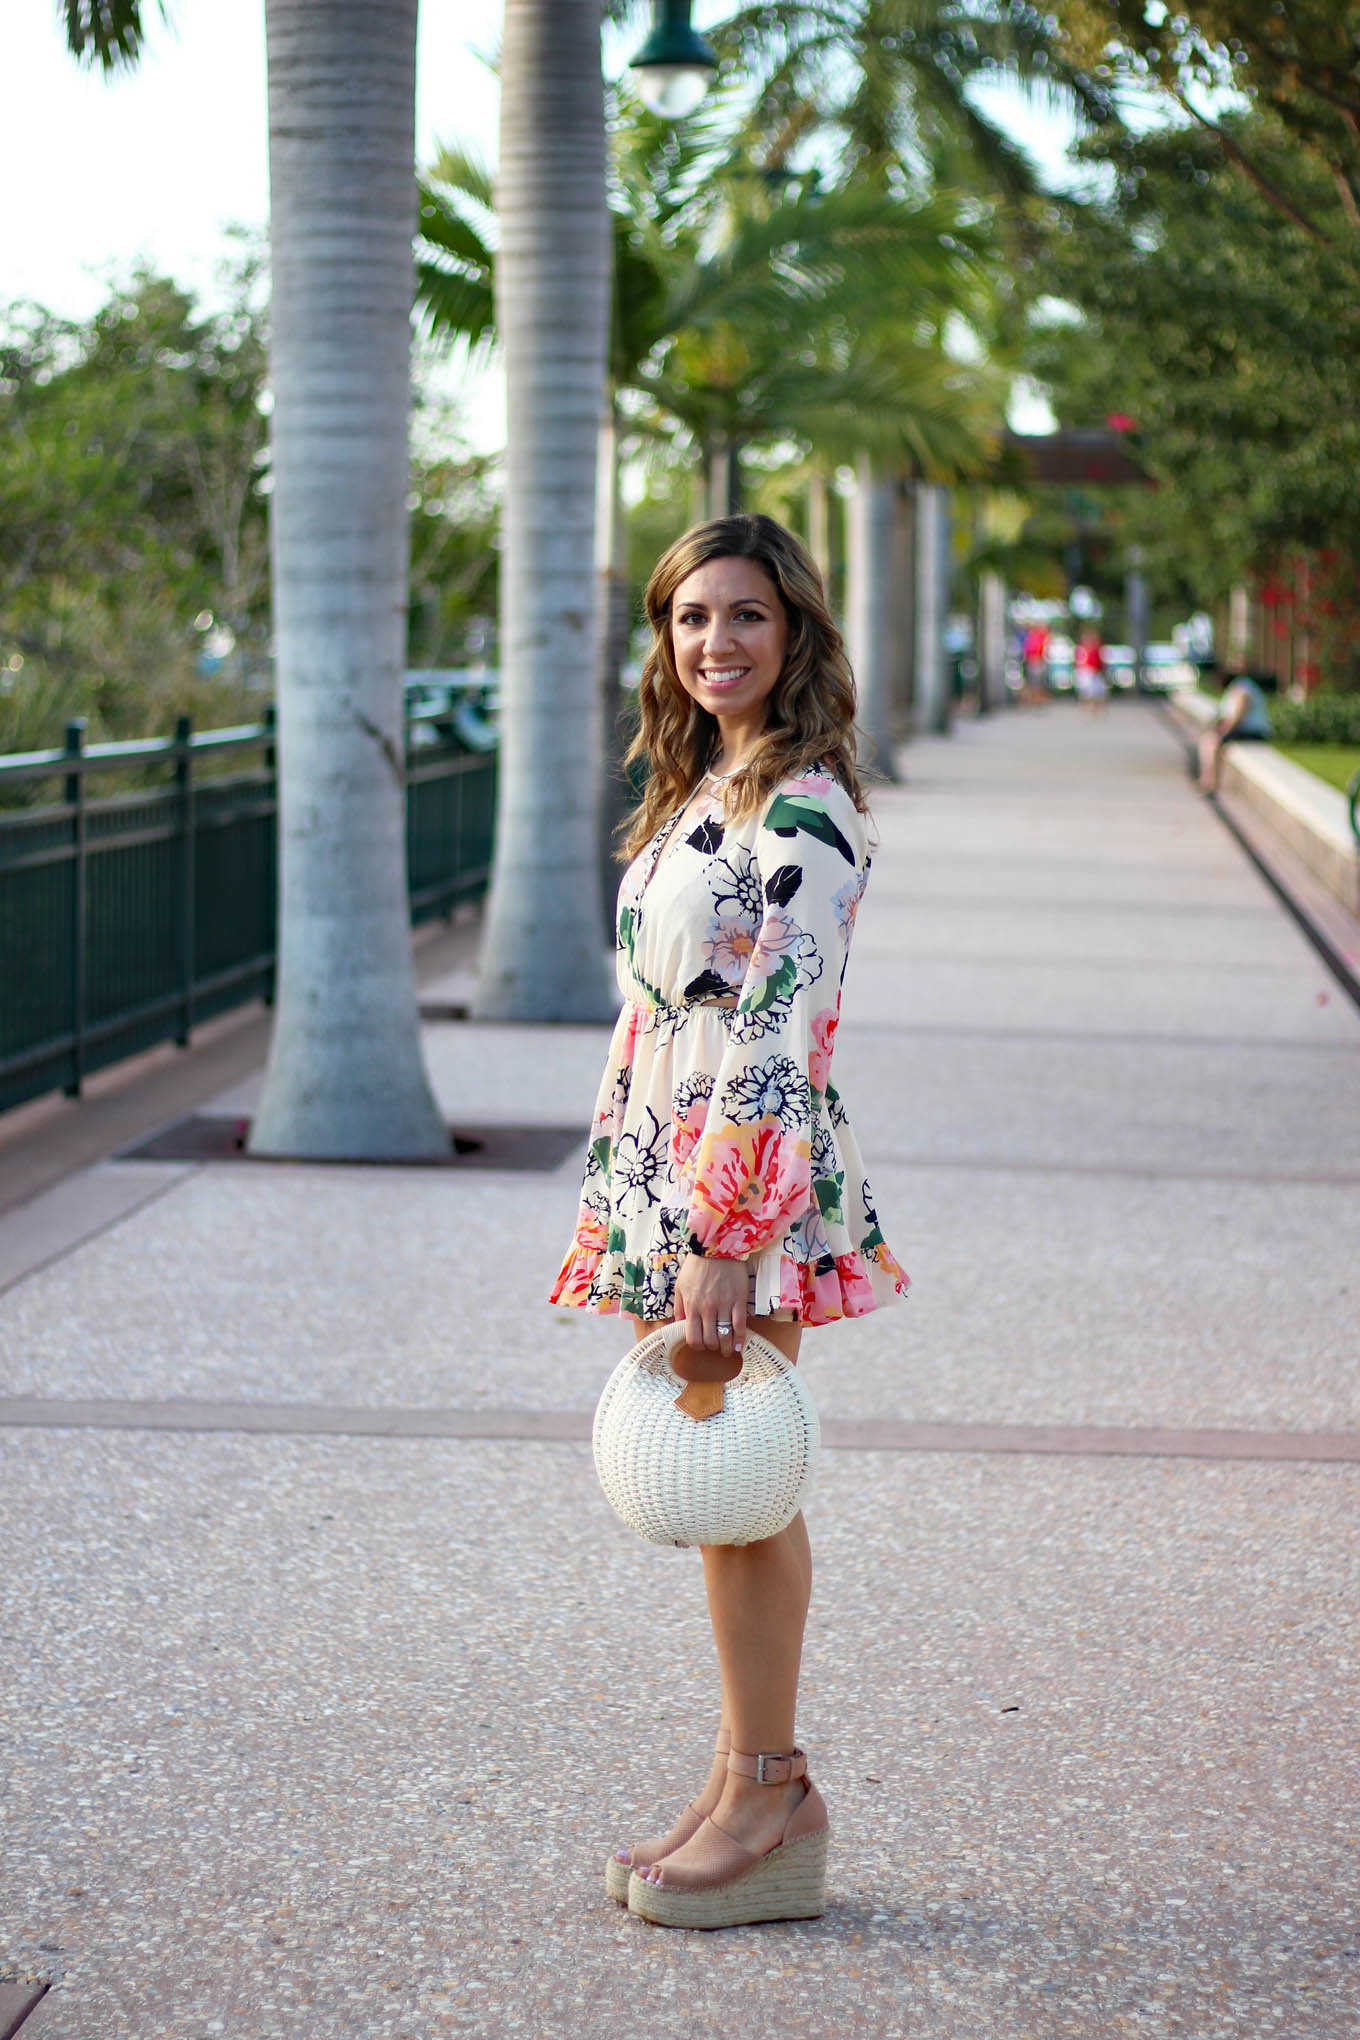 Lifestyle Blogger Roxanne Birnbaum of Glass of Glam in a Floral Ruffle Zaful romper, Marc Fisher Wedge Espadrilles, and a Zaful Basket Bag